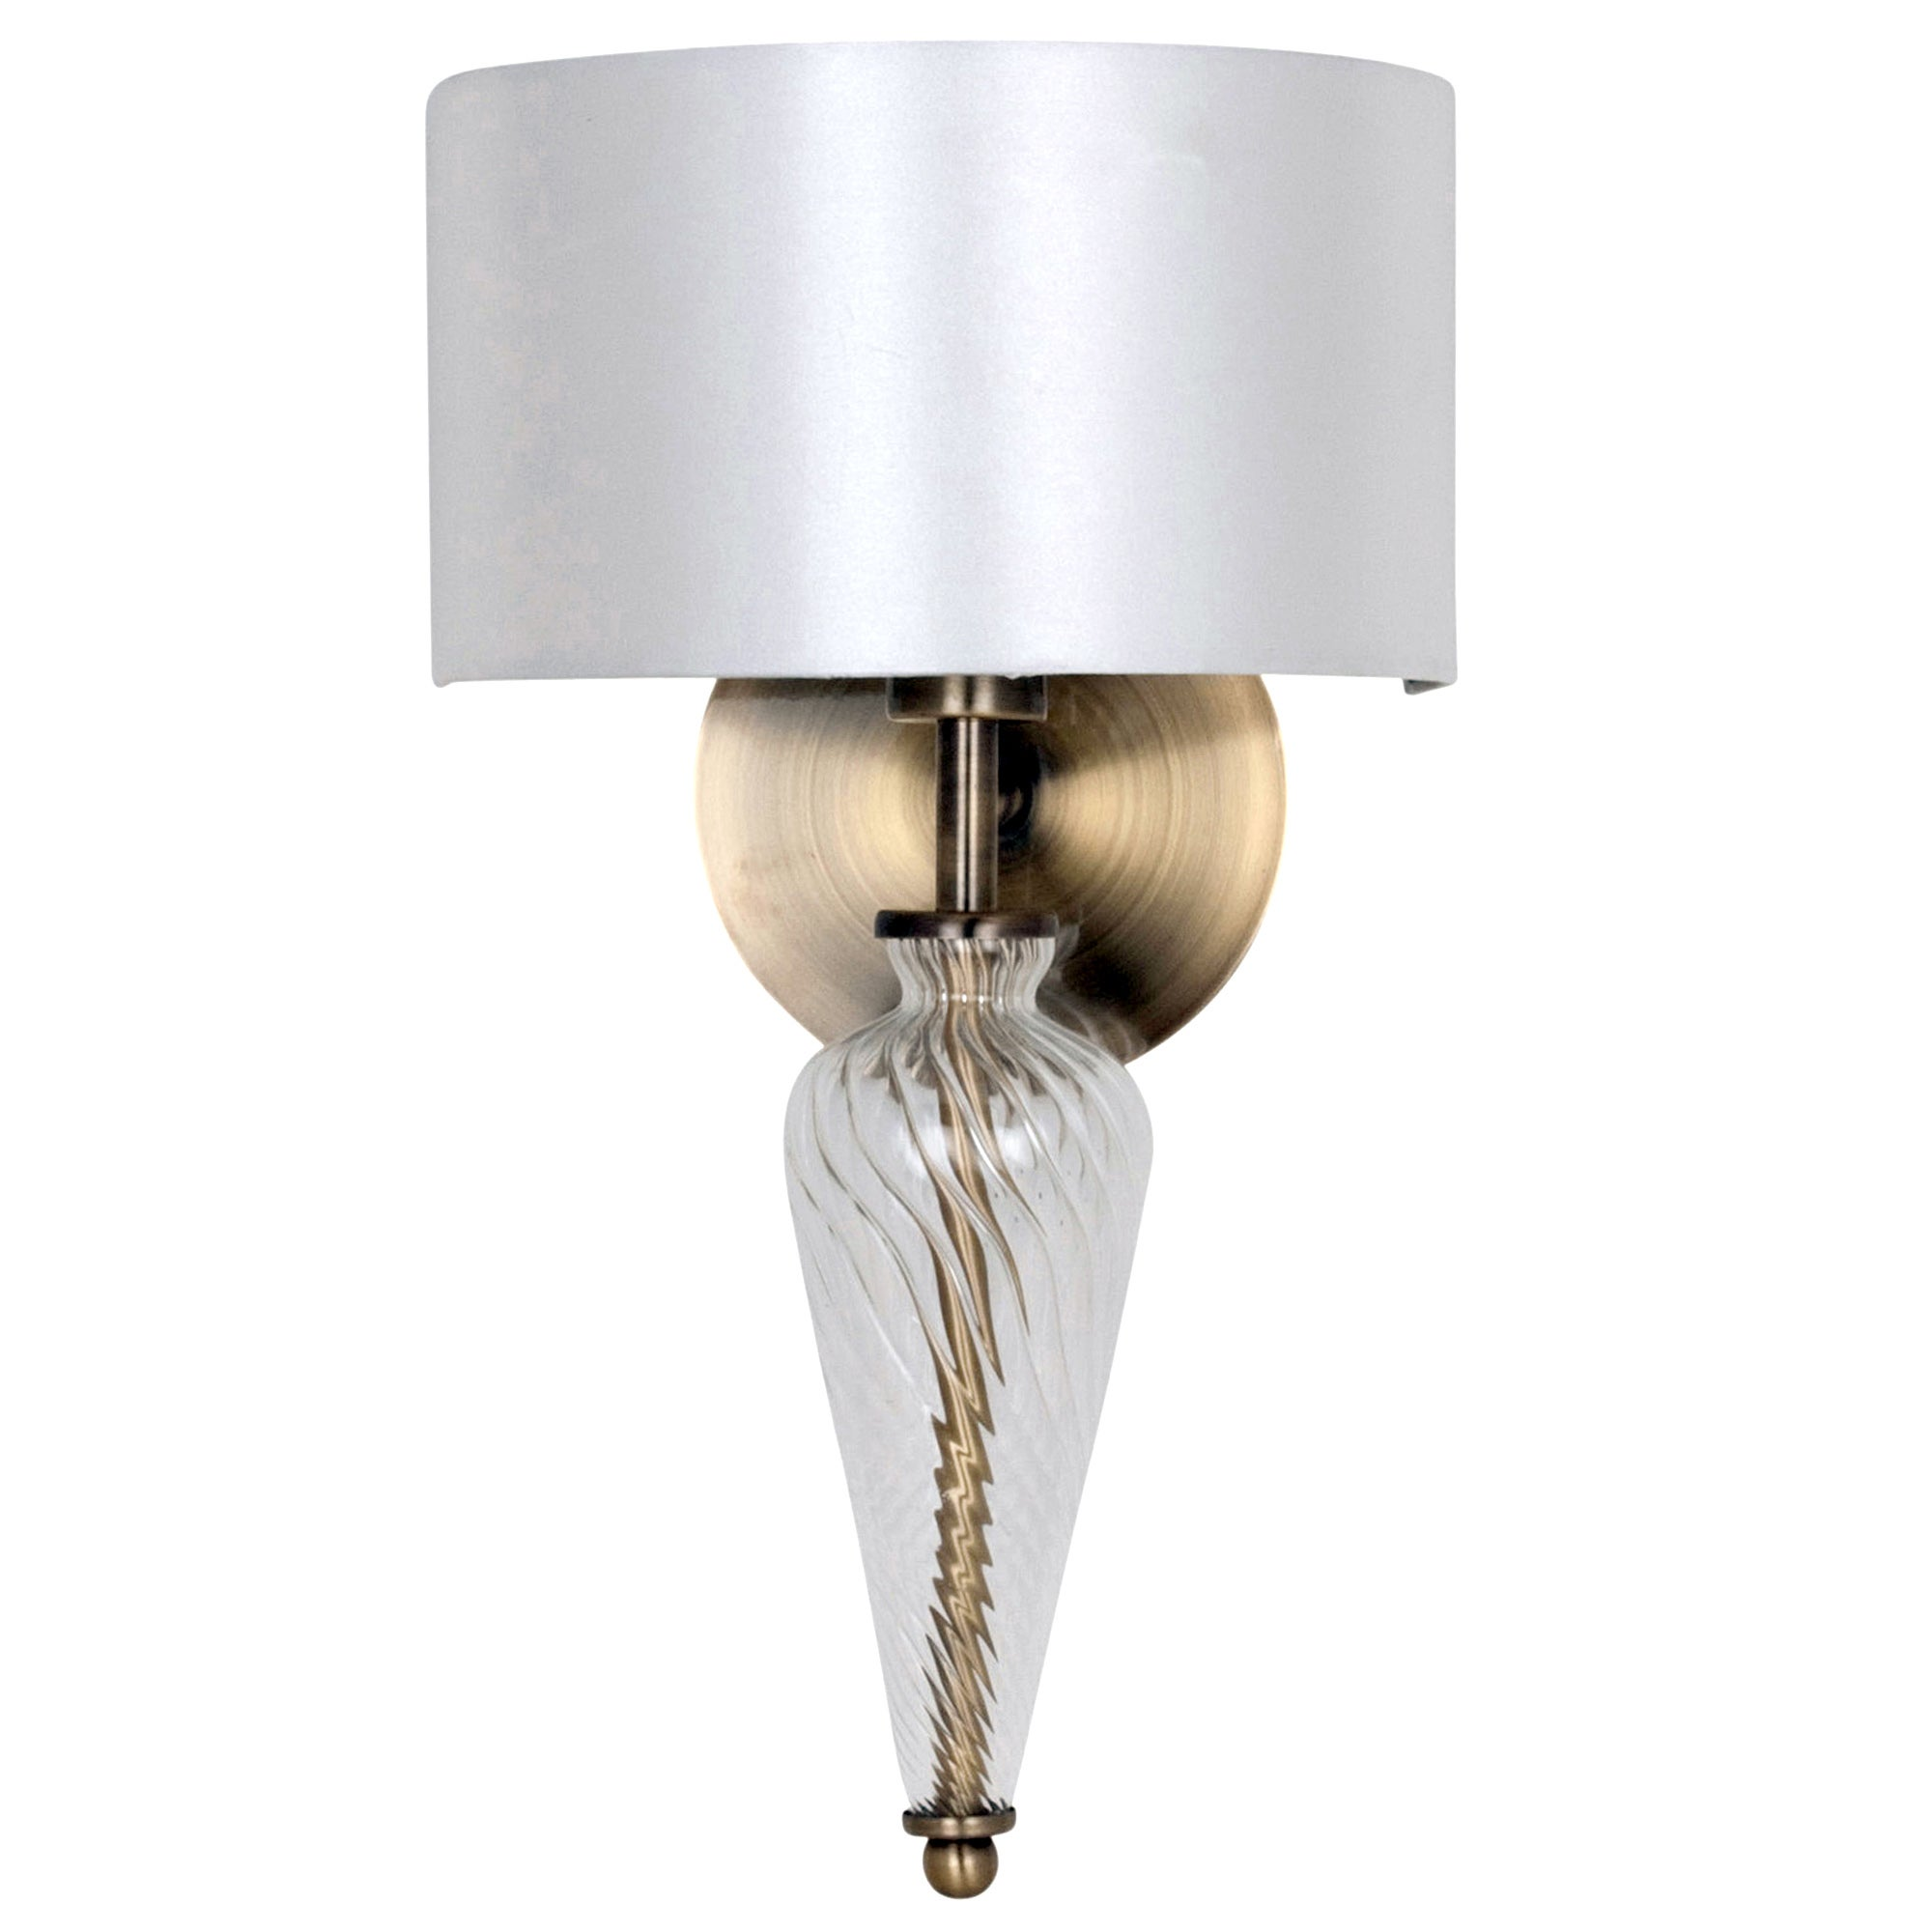 Dunelm Mill Wall Lamps : Art deco wall light Shop for cheap House Decorations and Save online